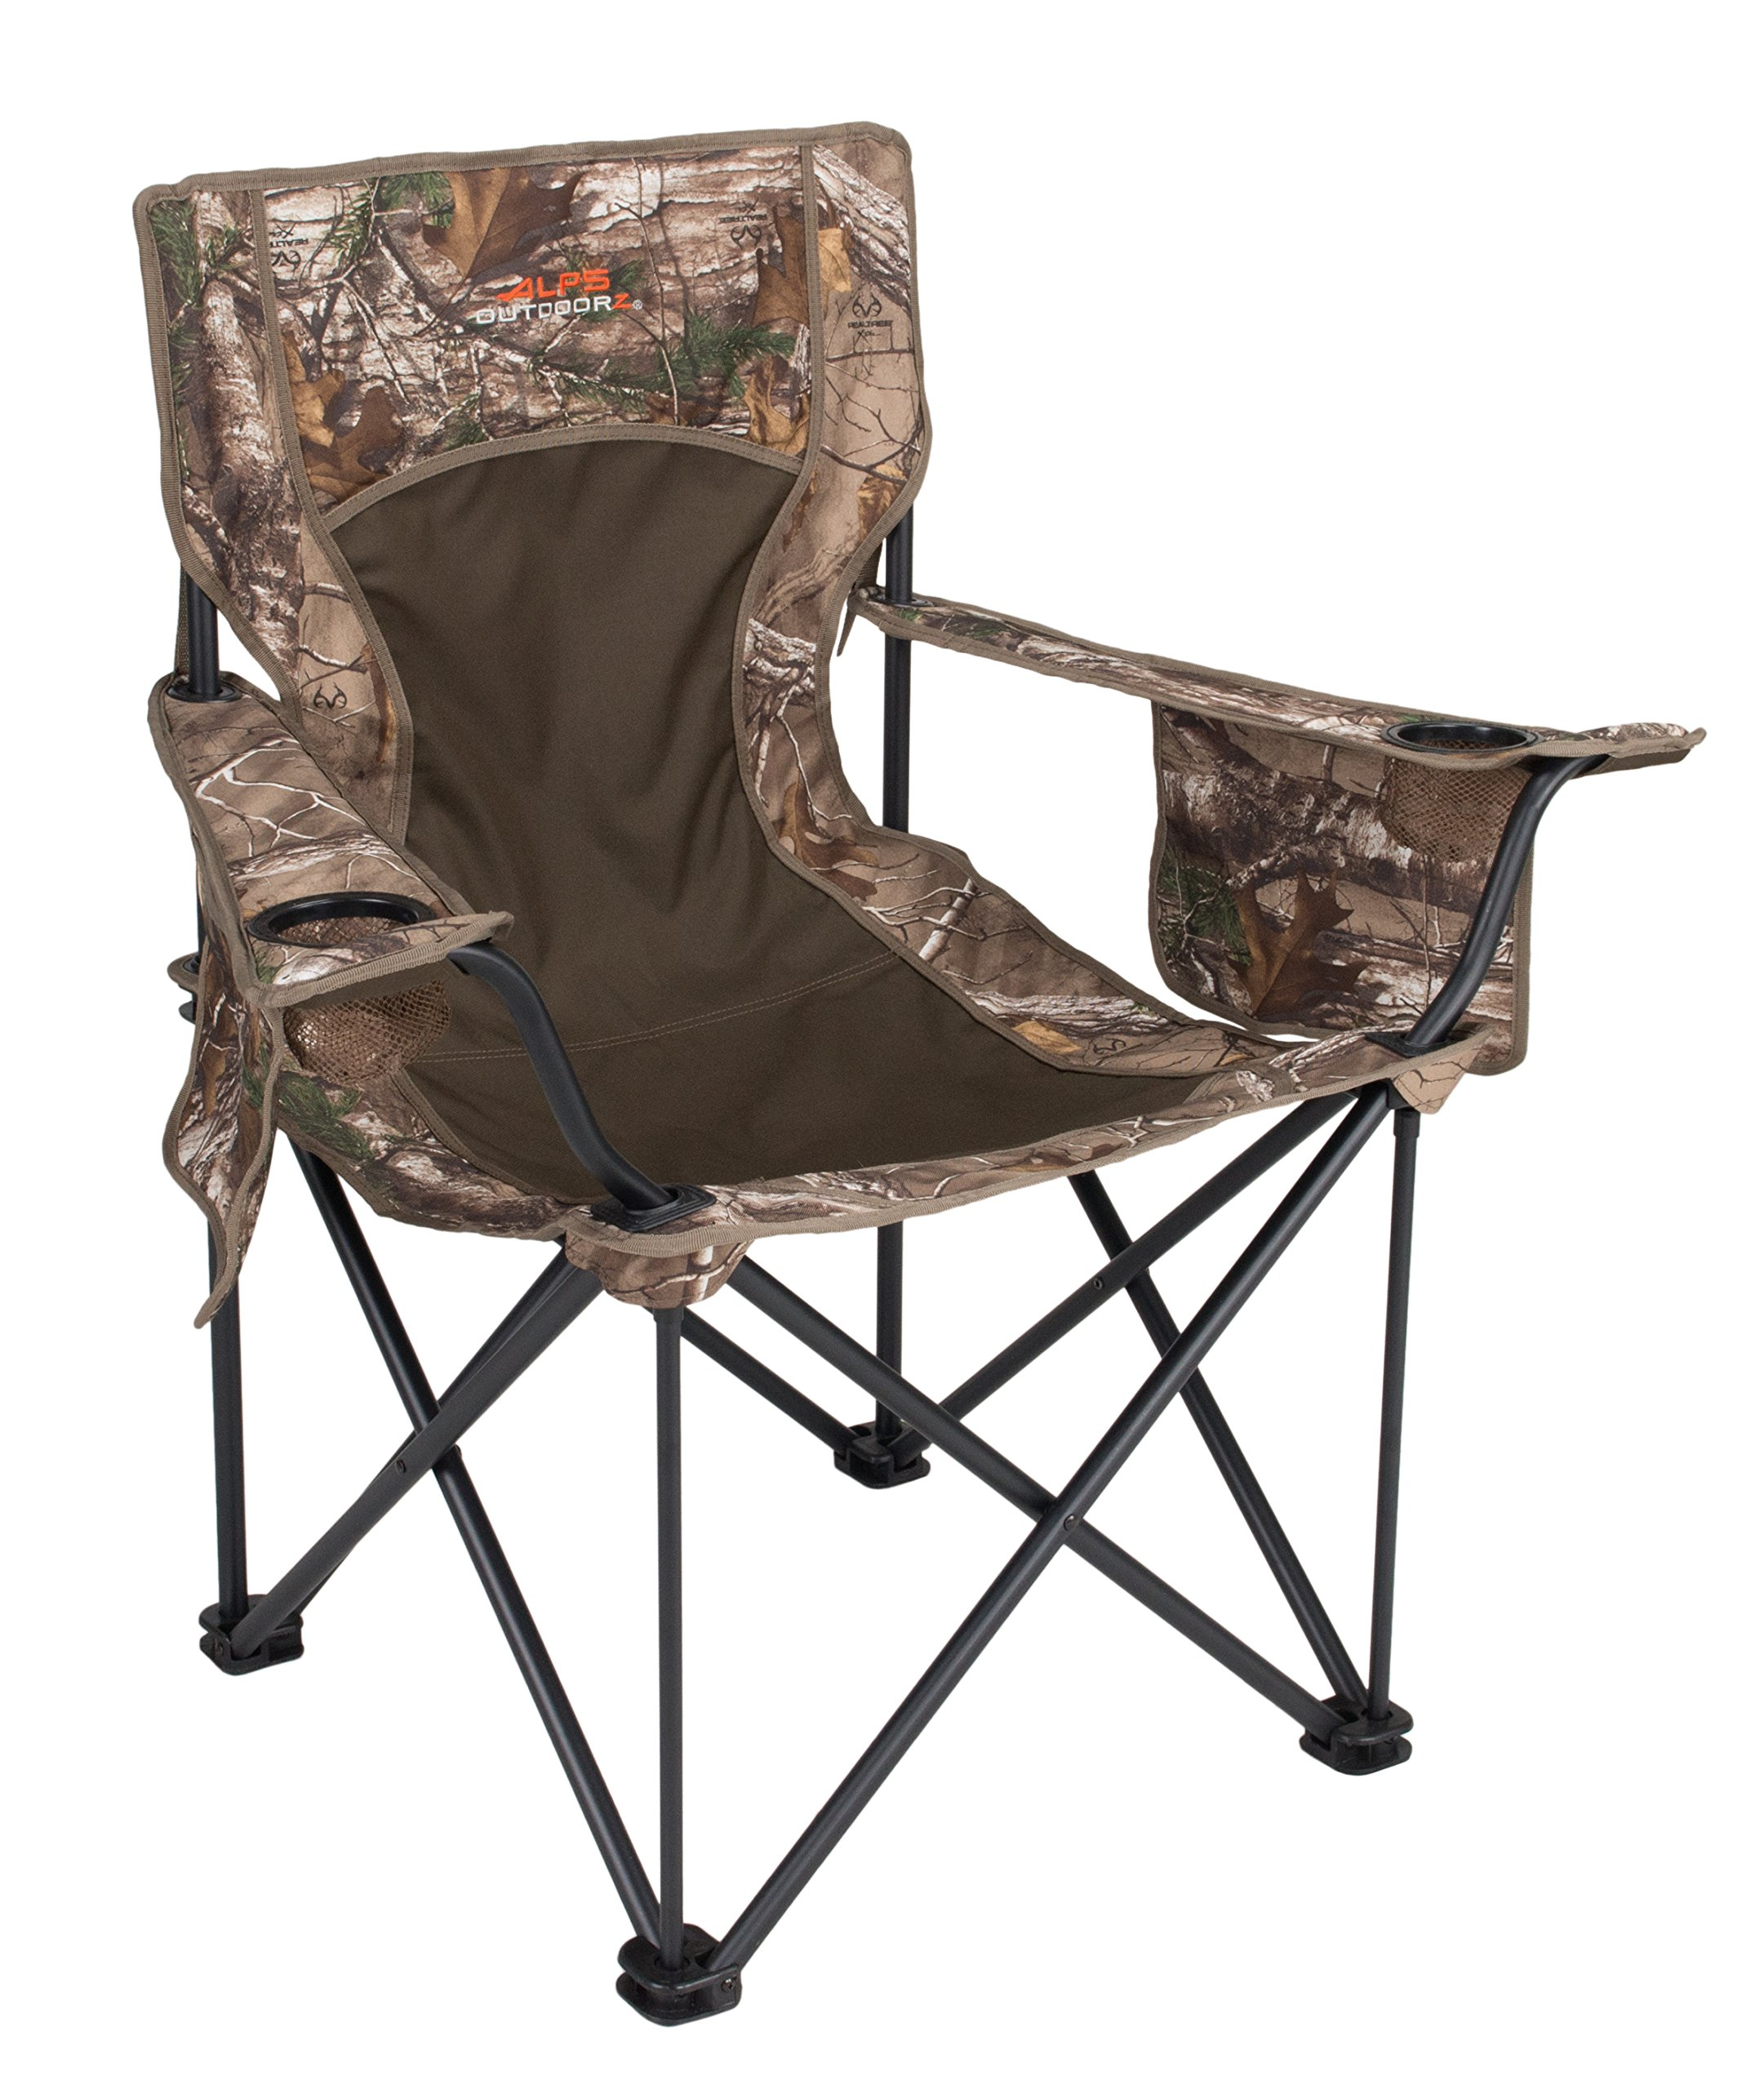 Alps Outdoorz 8411015 King Kong Chair With Color Blocking (Realtree Xtra Hd) 14